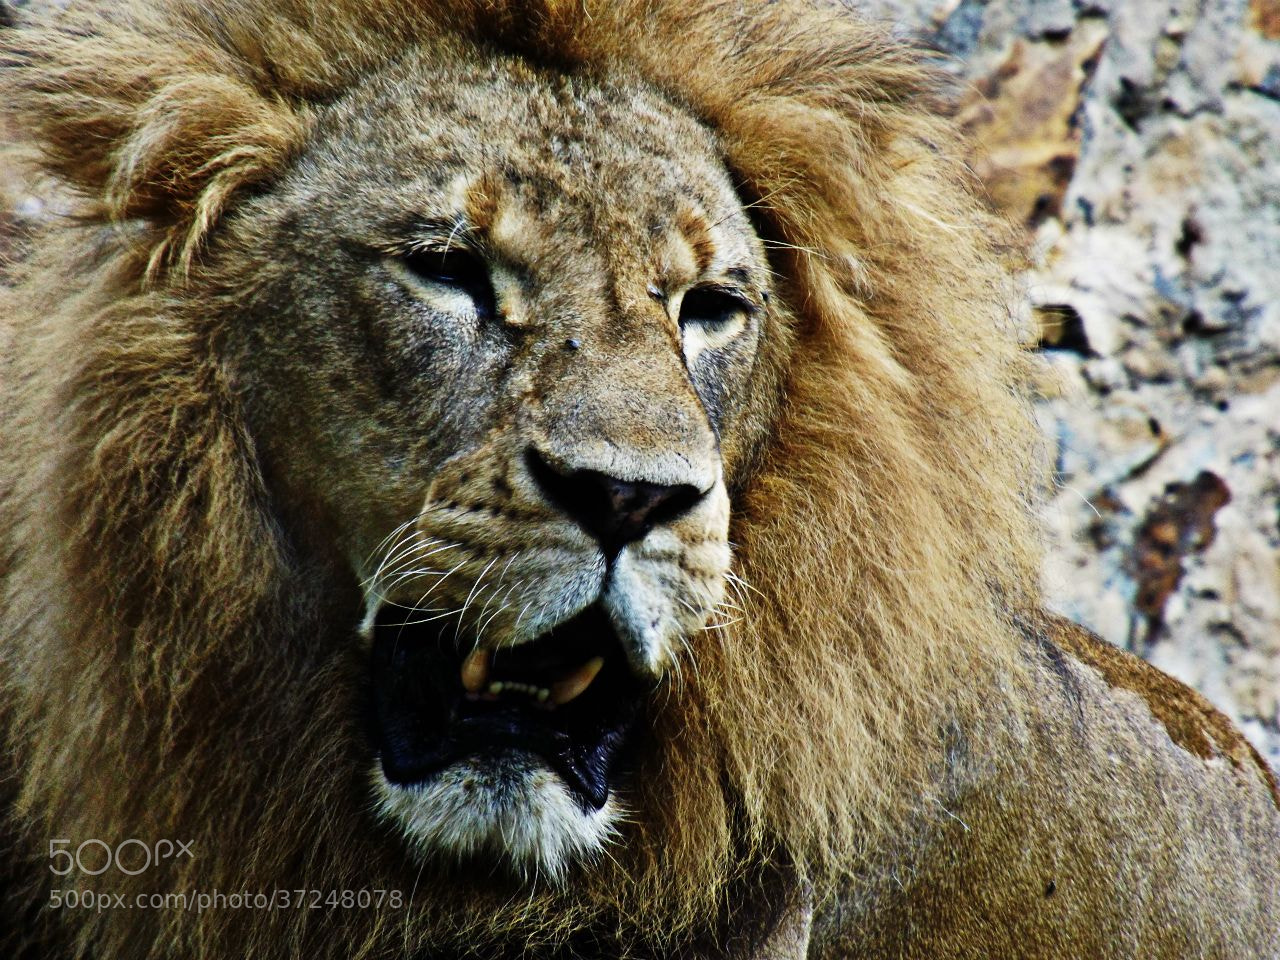 Photograph LEON  by yeslith hurtado on 500px